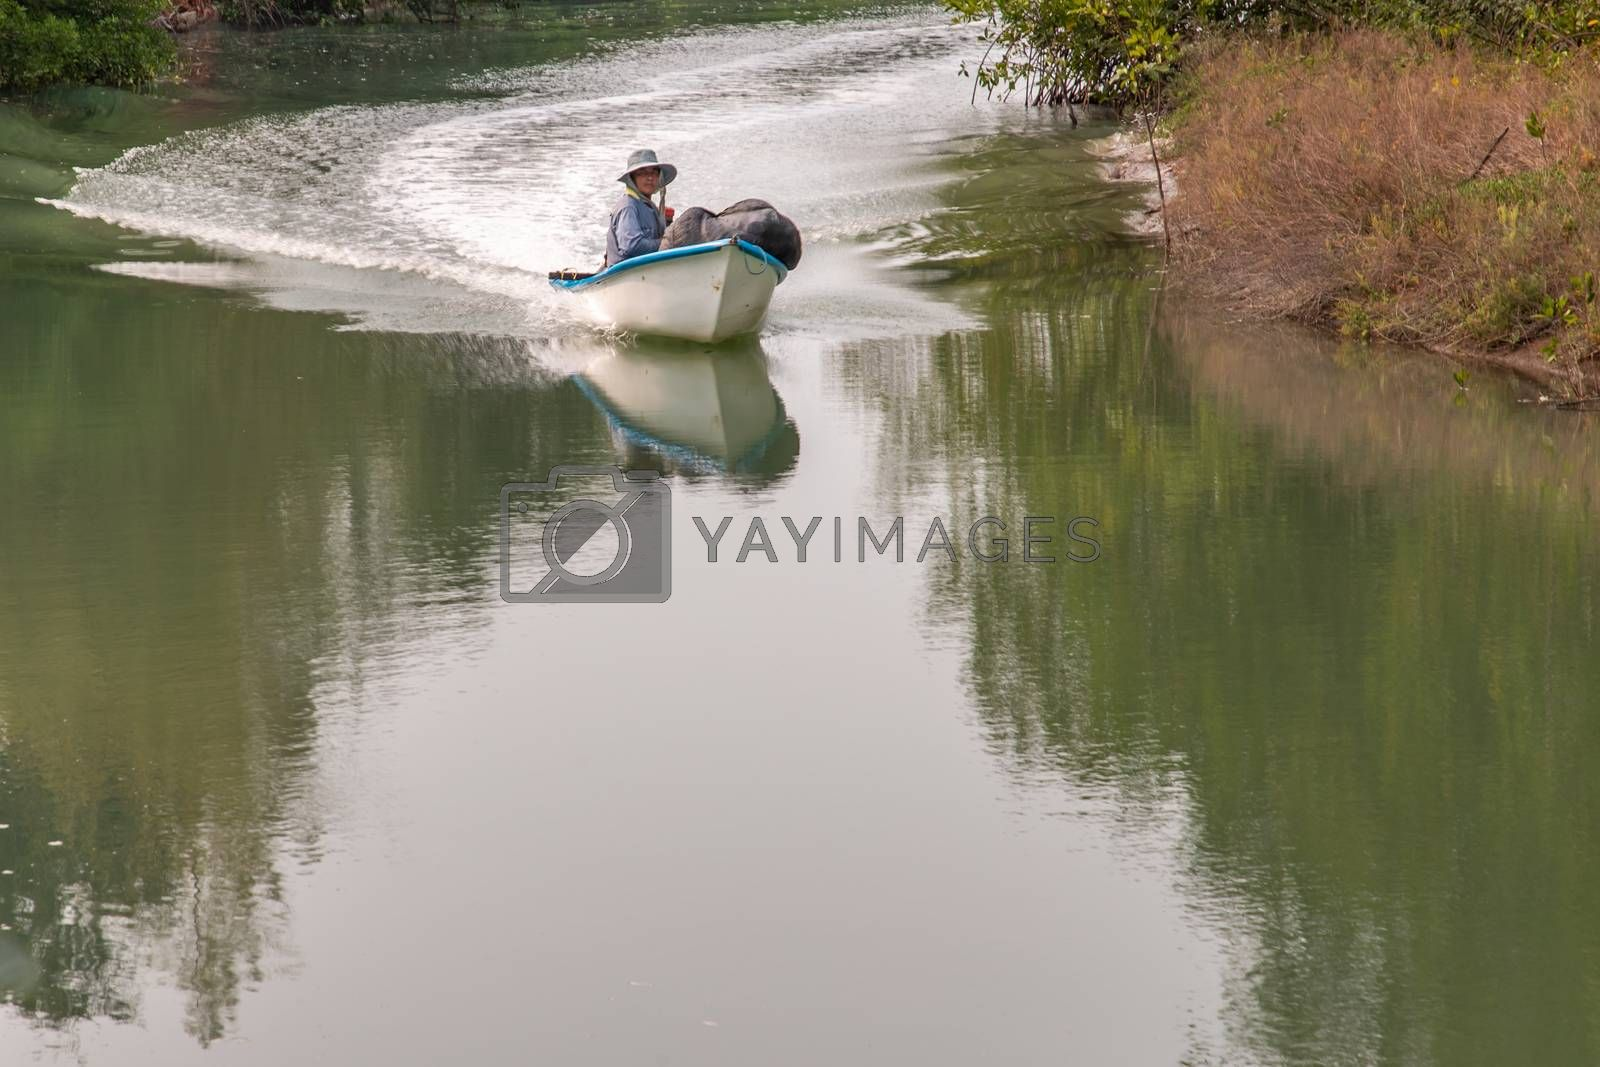 Phetchaburi,Thailand - Mar 15, 2020 : Motorboat driver on the canal. Mechanical boats and transport drivers and water traffic. No focus, specifically.